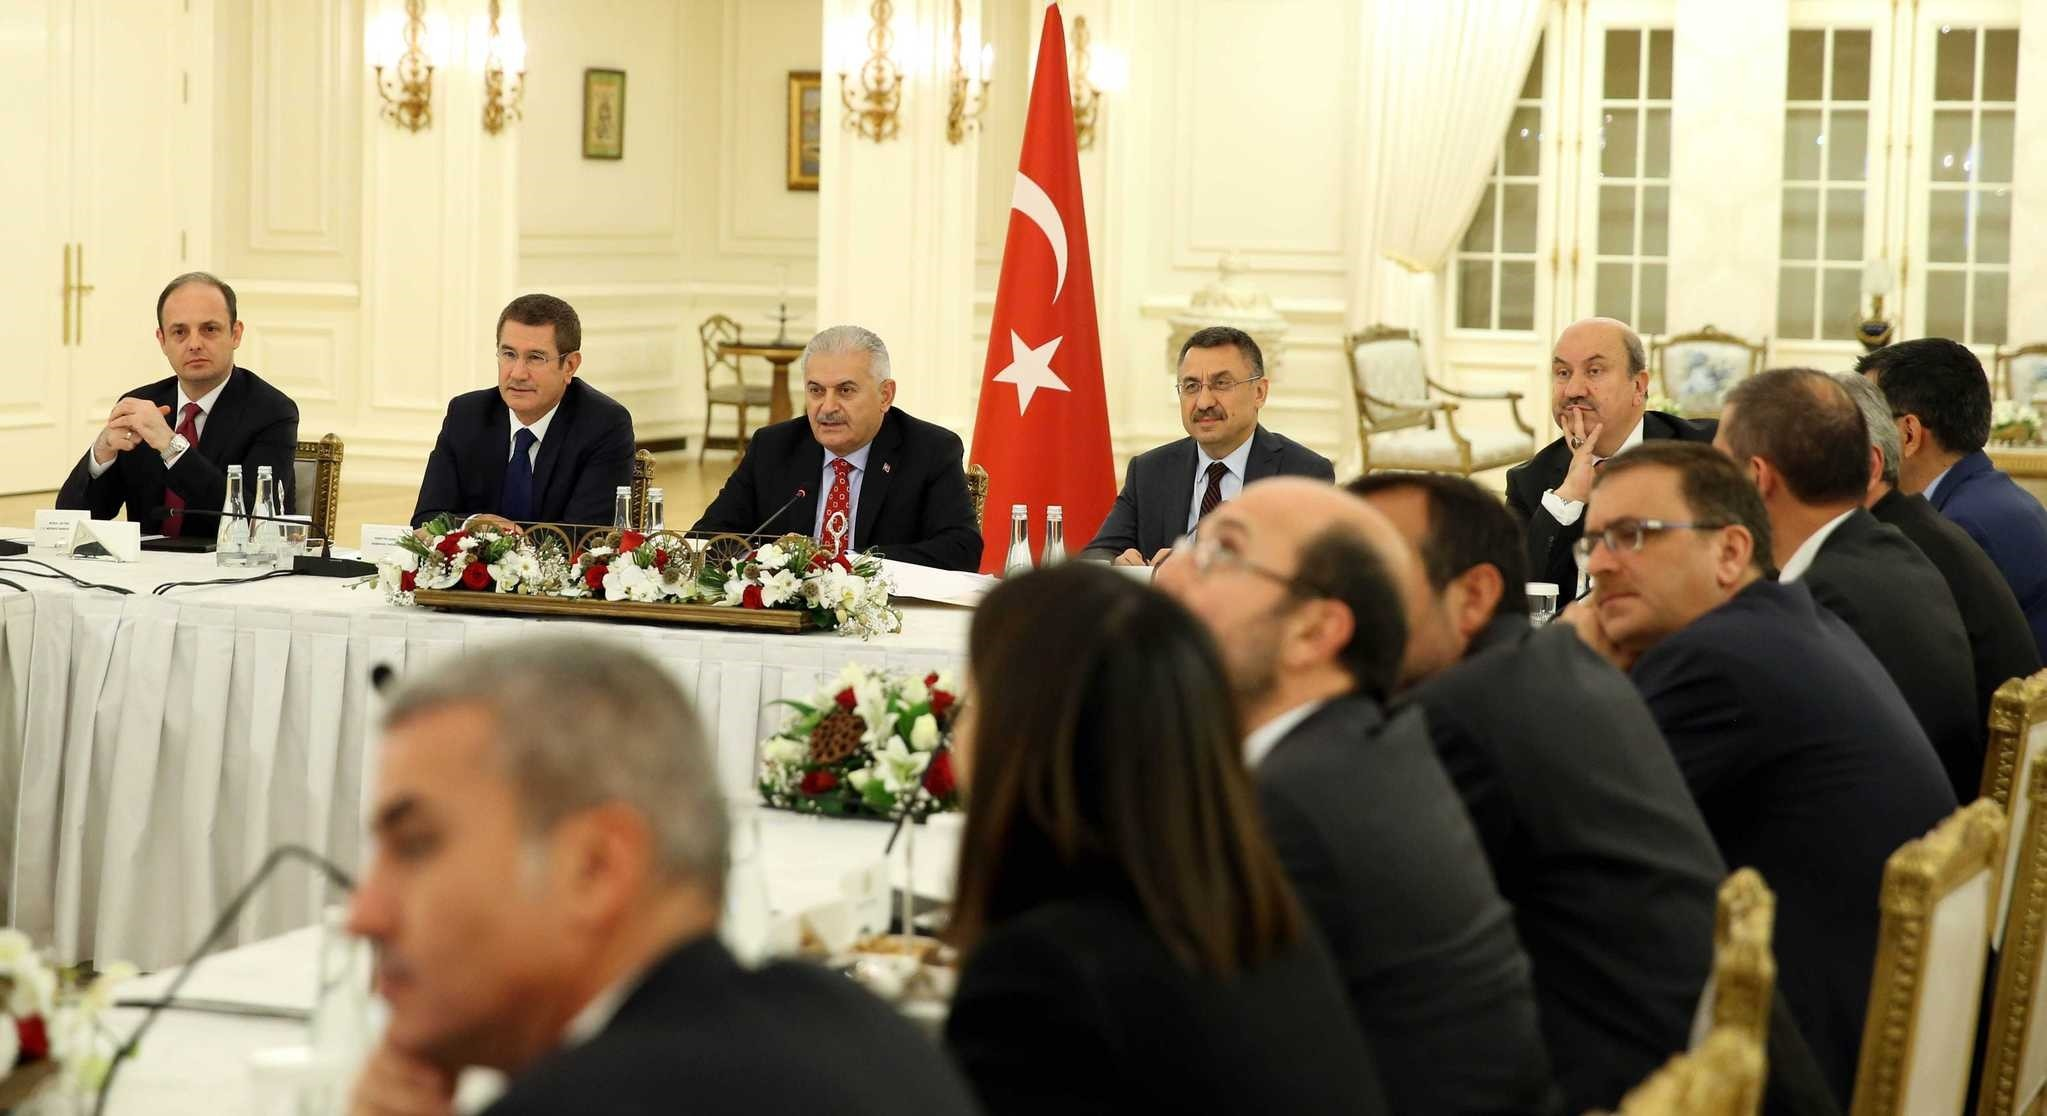 Prime Minister Yu0131ldu0131ru0131m held a special meeting with the heads of Turkish banks late Tuesday.